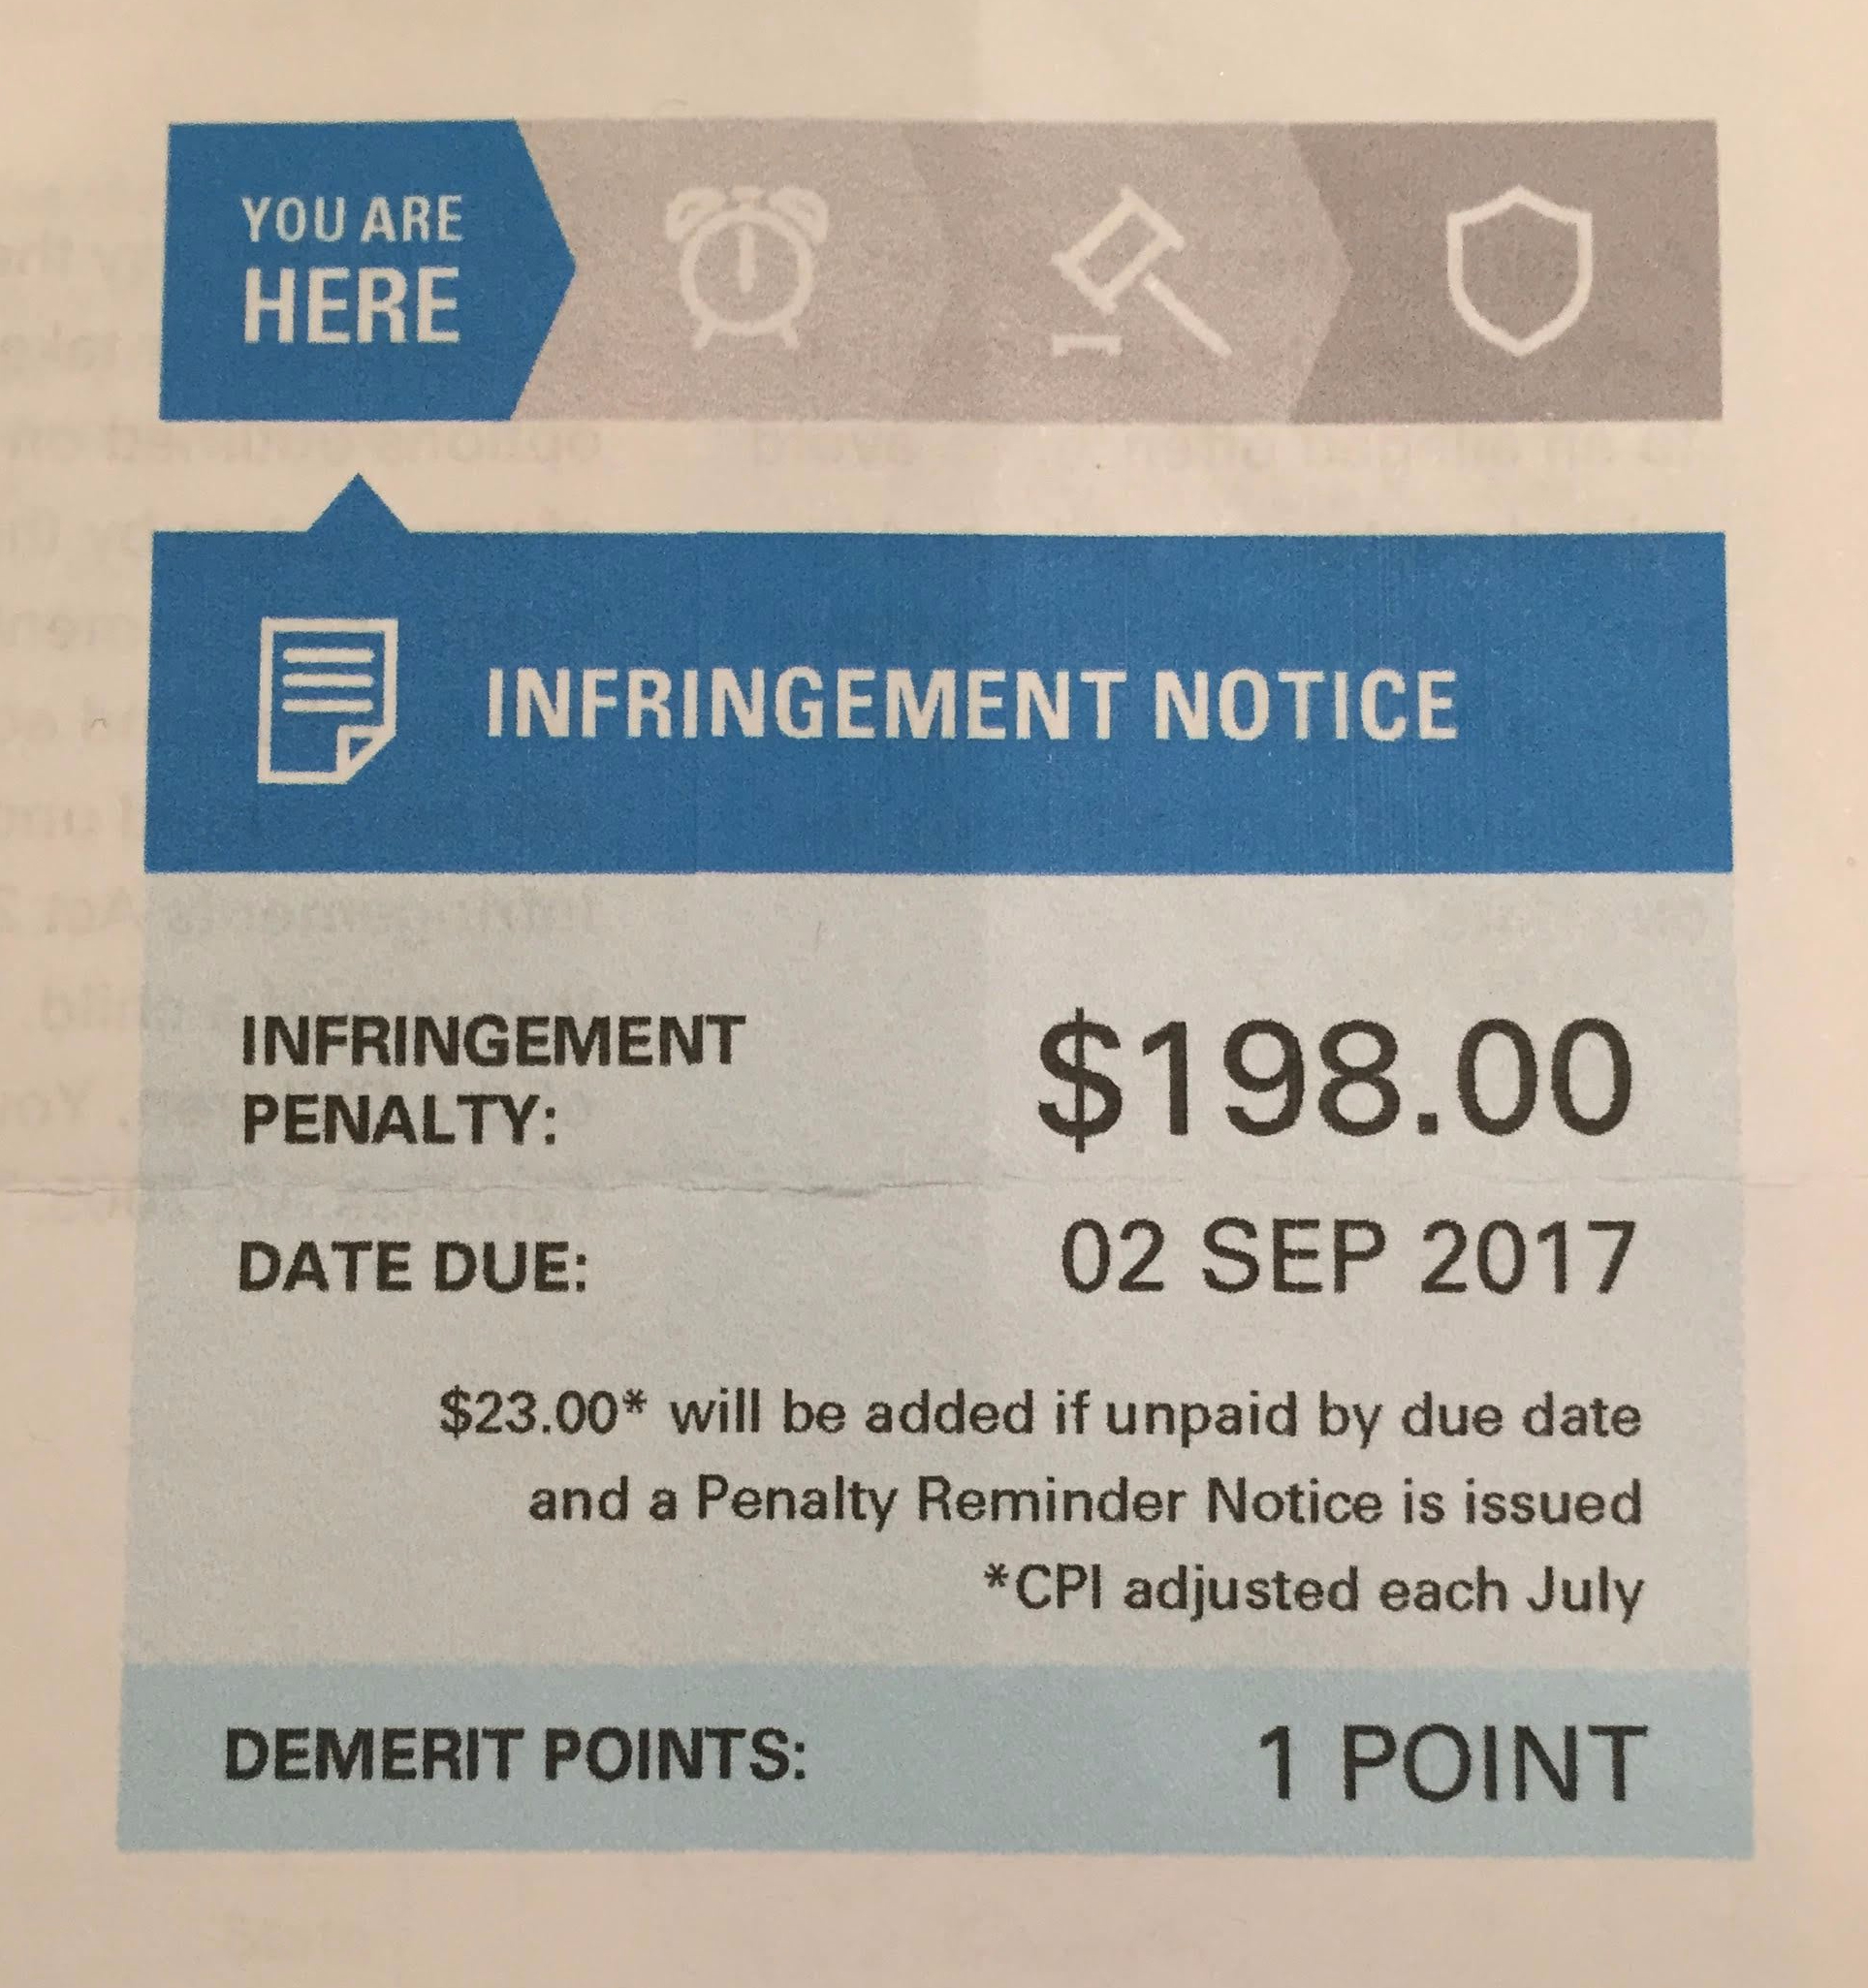 demerit-point.jpg